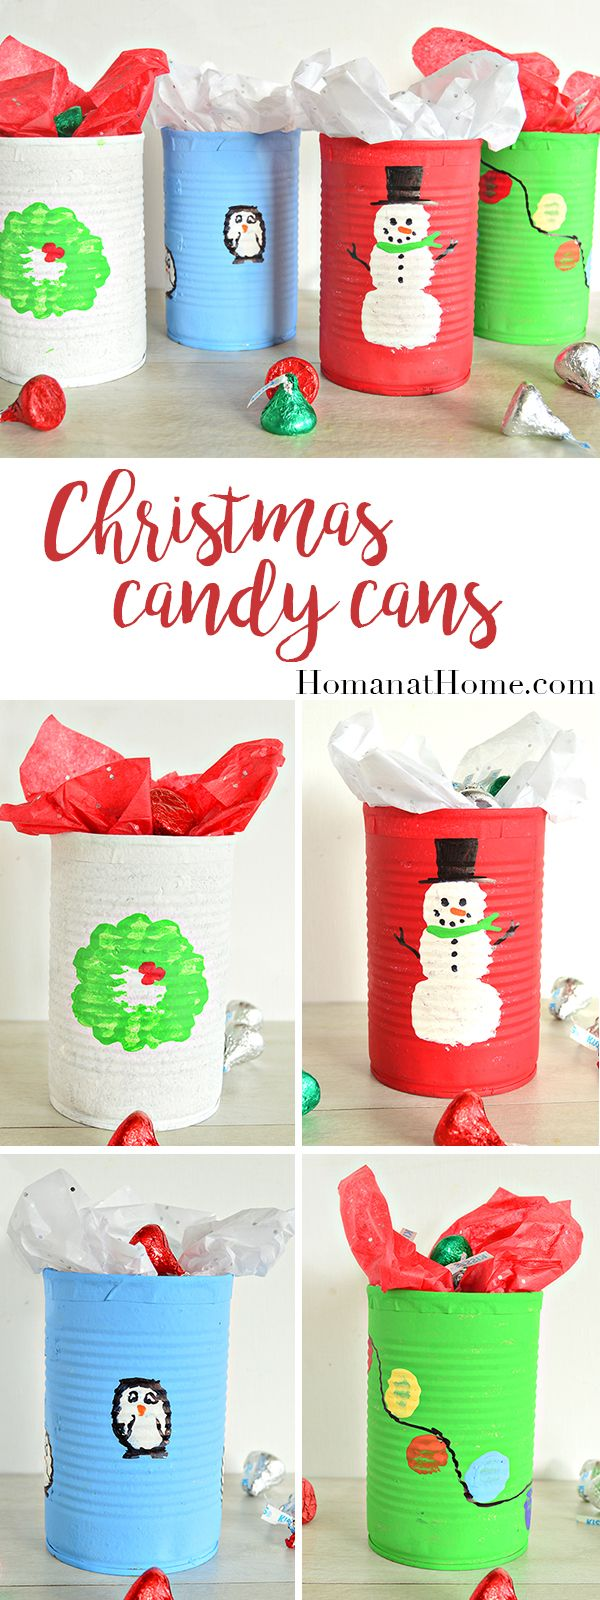 Upcycle used tin cans to make an adorable Christmas Candy Can. Easy enough kids can do it, and it makes a great friend and neighbor gift!